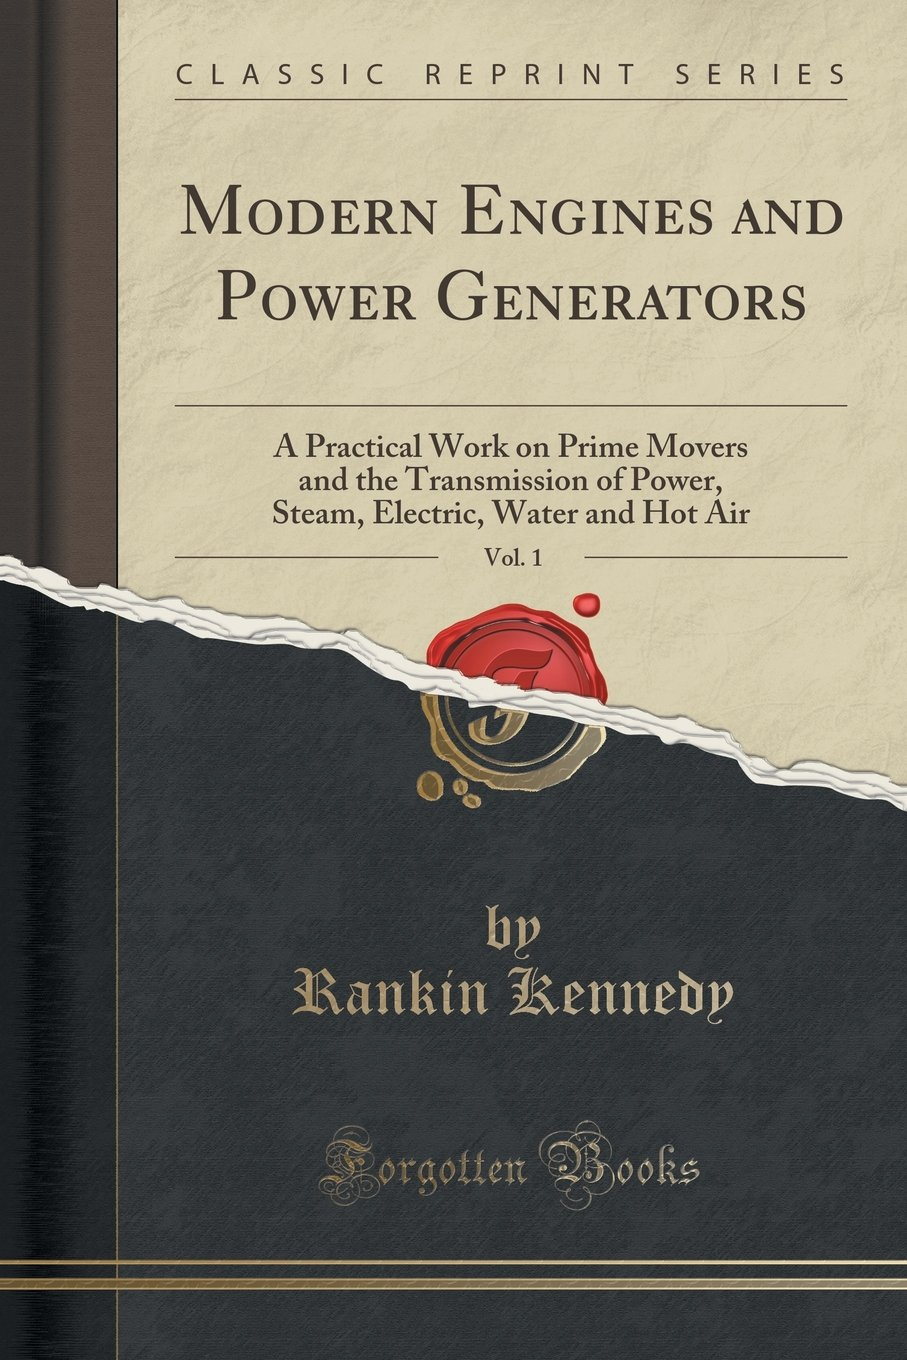 modern-engines-and-power-generators-vol-1-a-practical-work-on-prime-movers-and-the-transmission-of-power-steam-electric-water-and-hot-air-classic-reprint